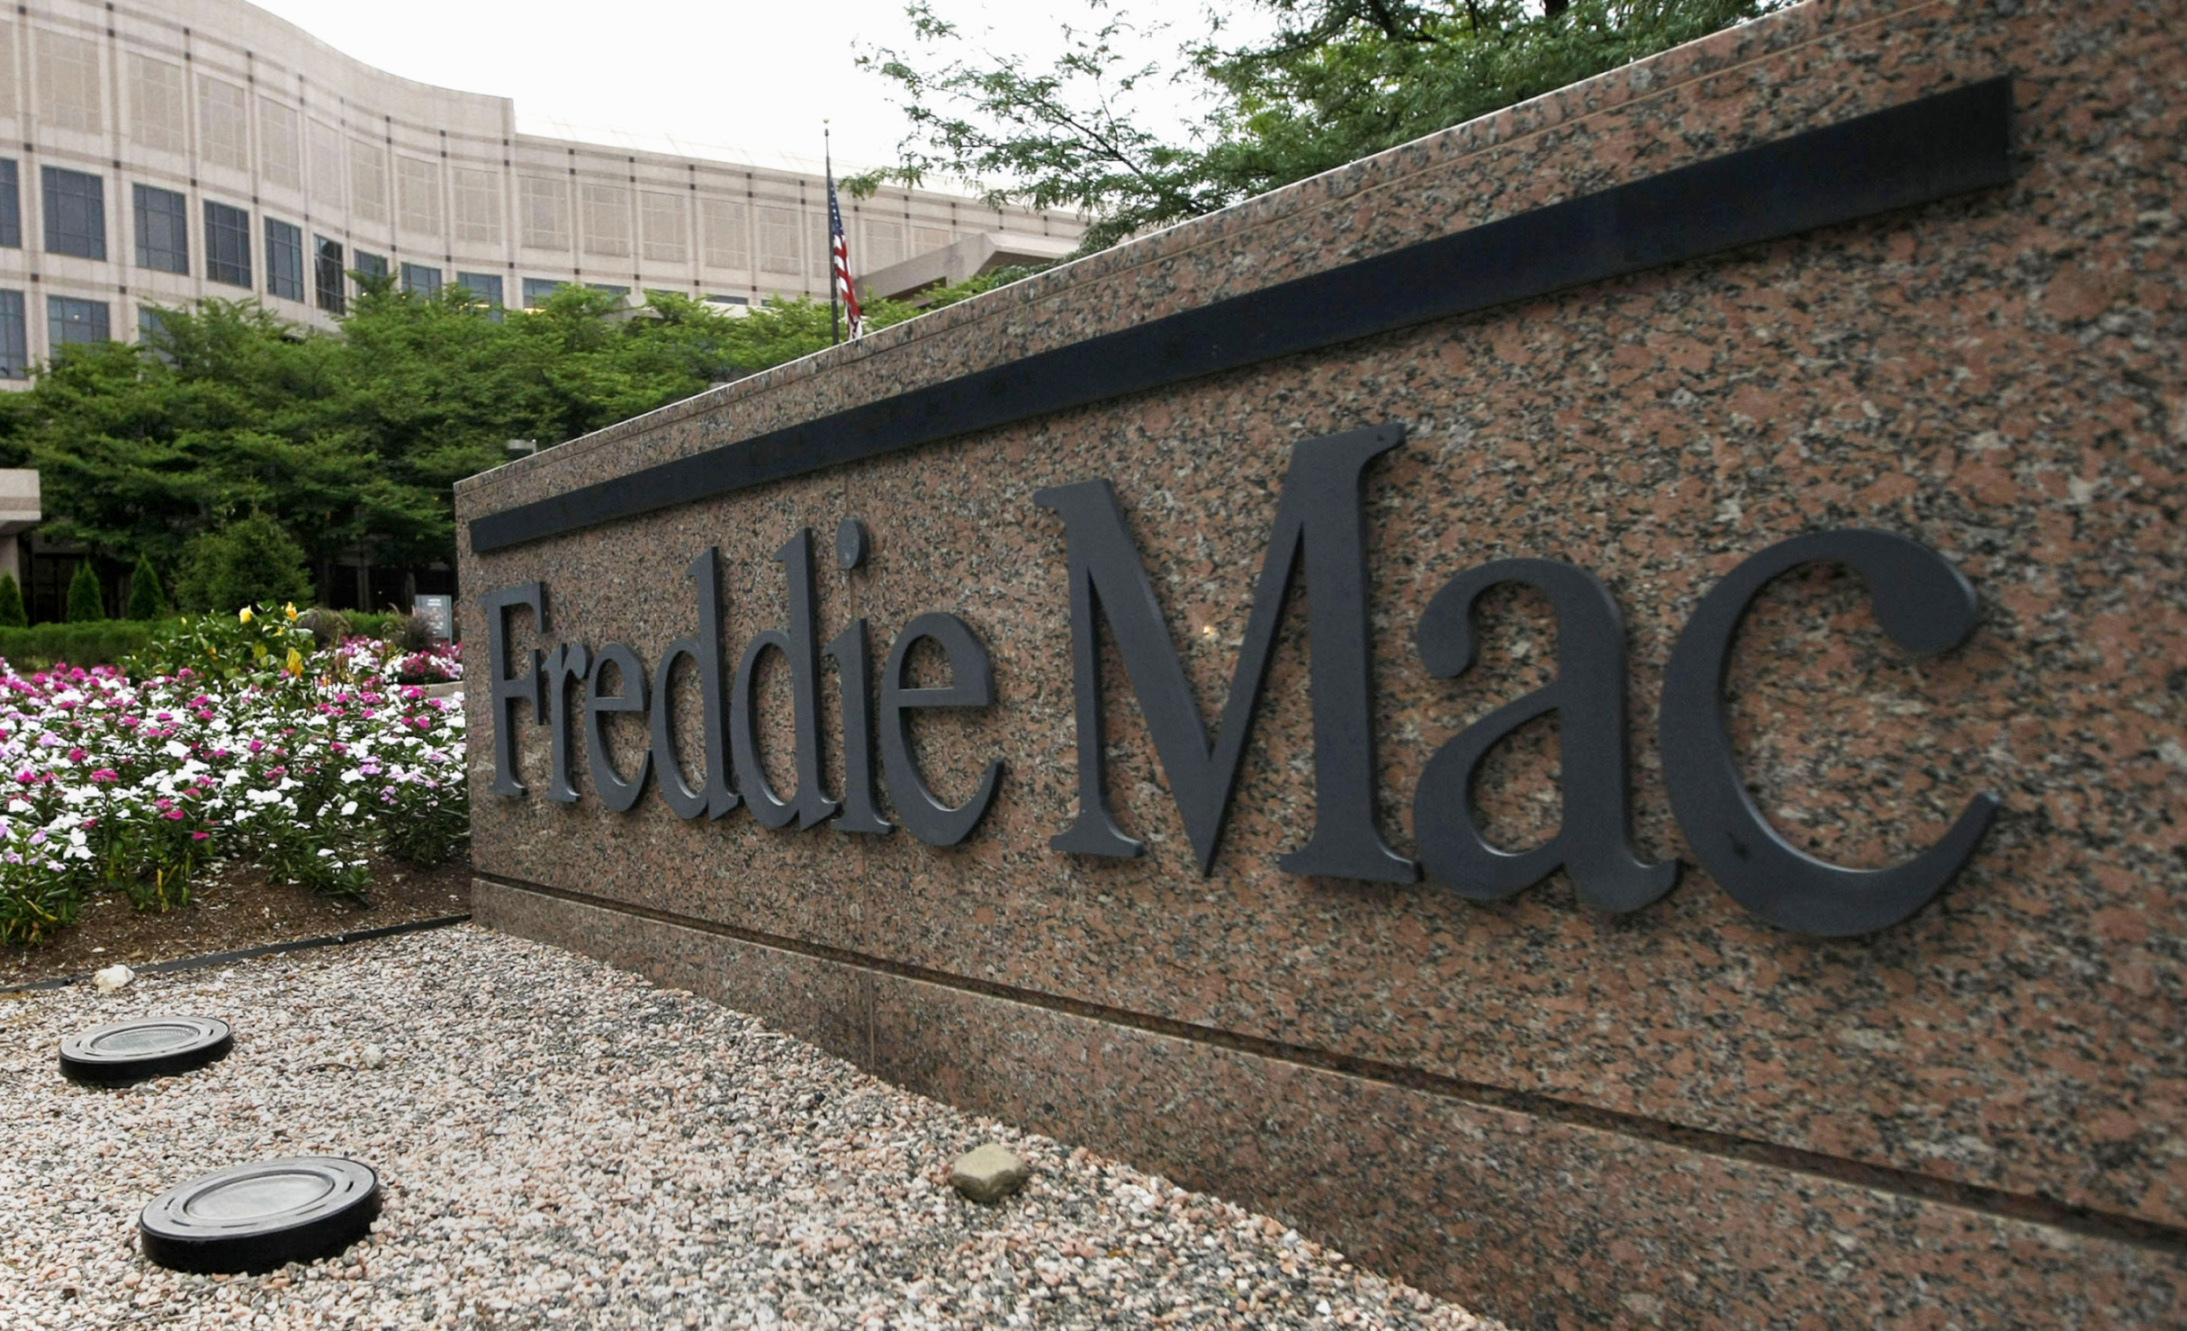 Freddie Mac: 'Difficult' for mortgage rates to rise right now